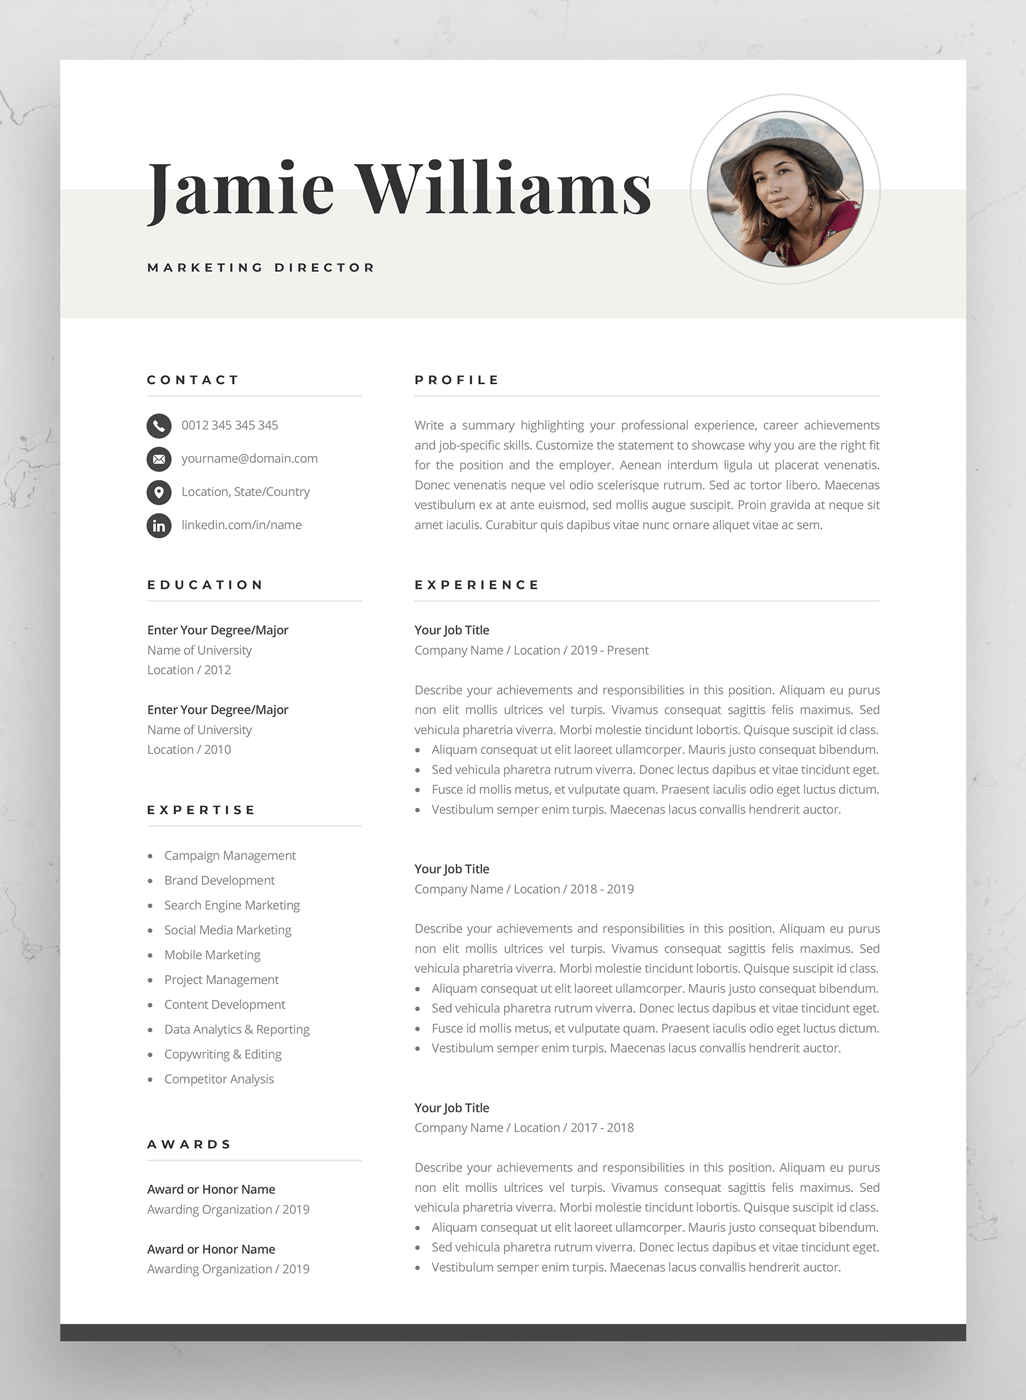 Elegant Dark Microsoft Word One-Page Resume Templates